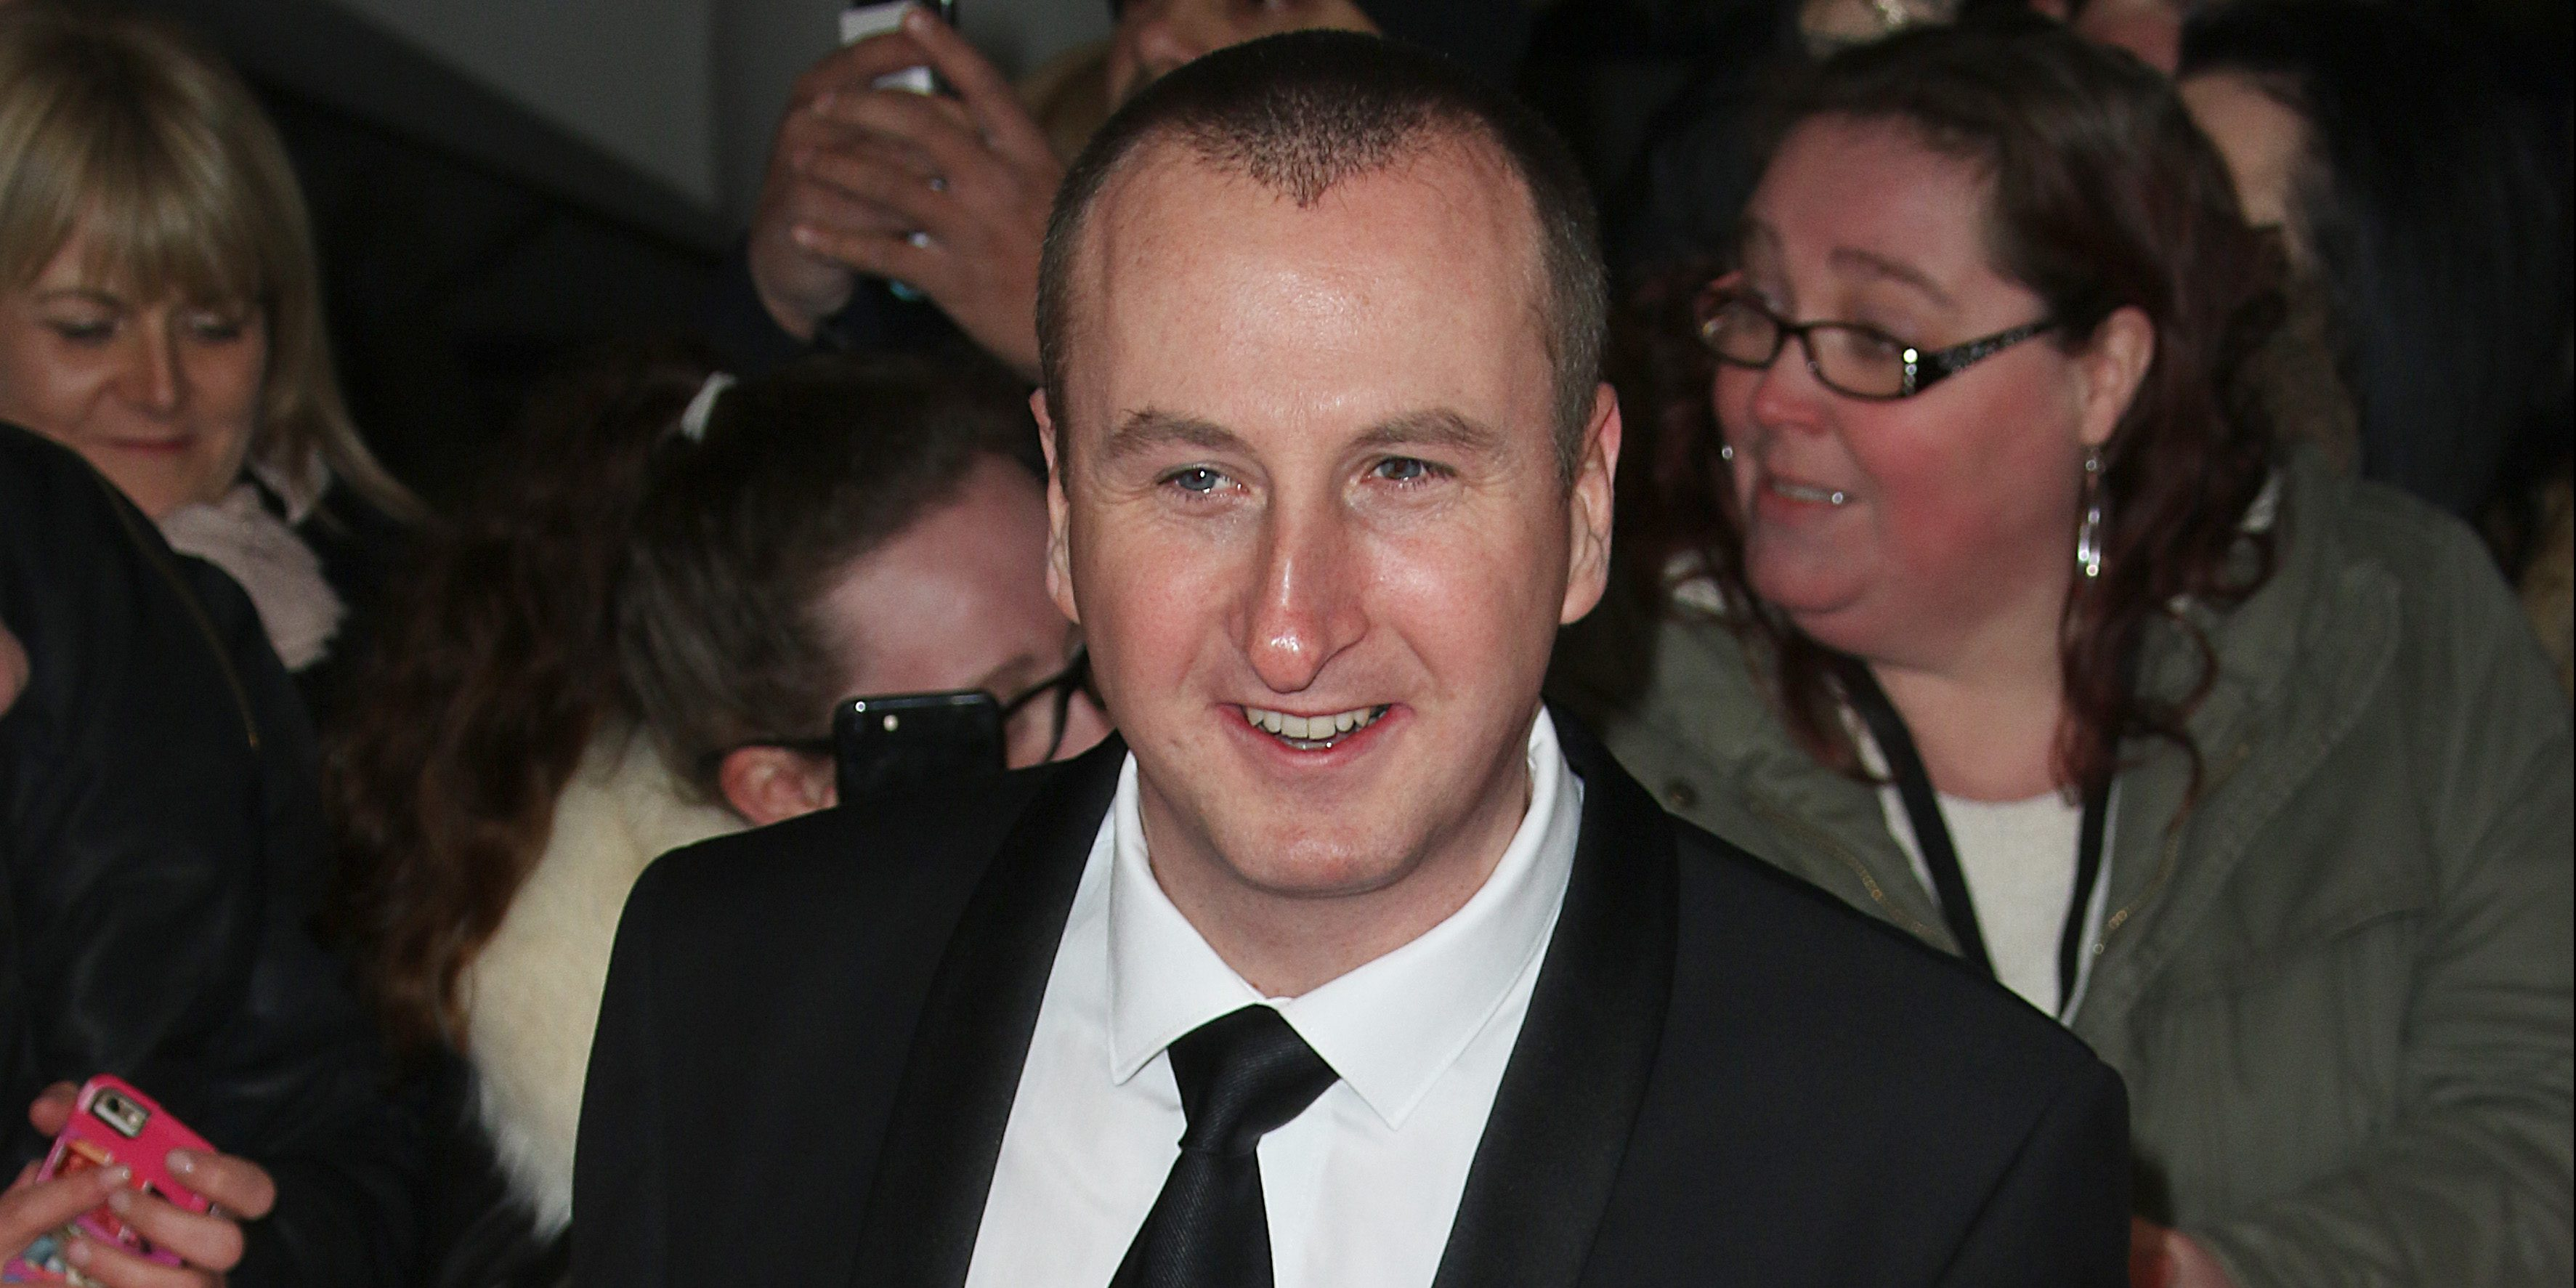 Coronation Street's Andy Whyment 'lands new £125,000-a-year contract for soap'